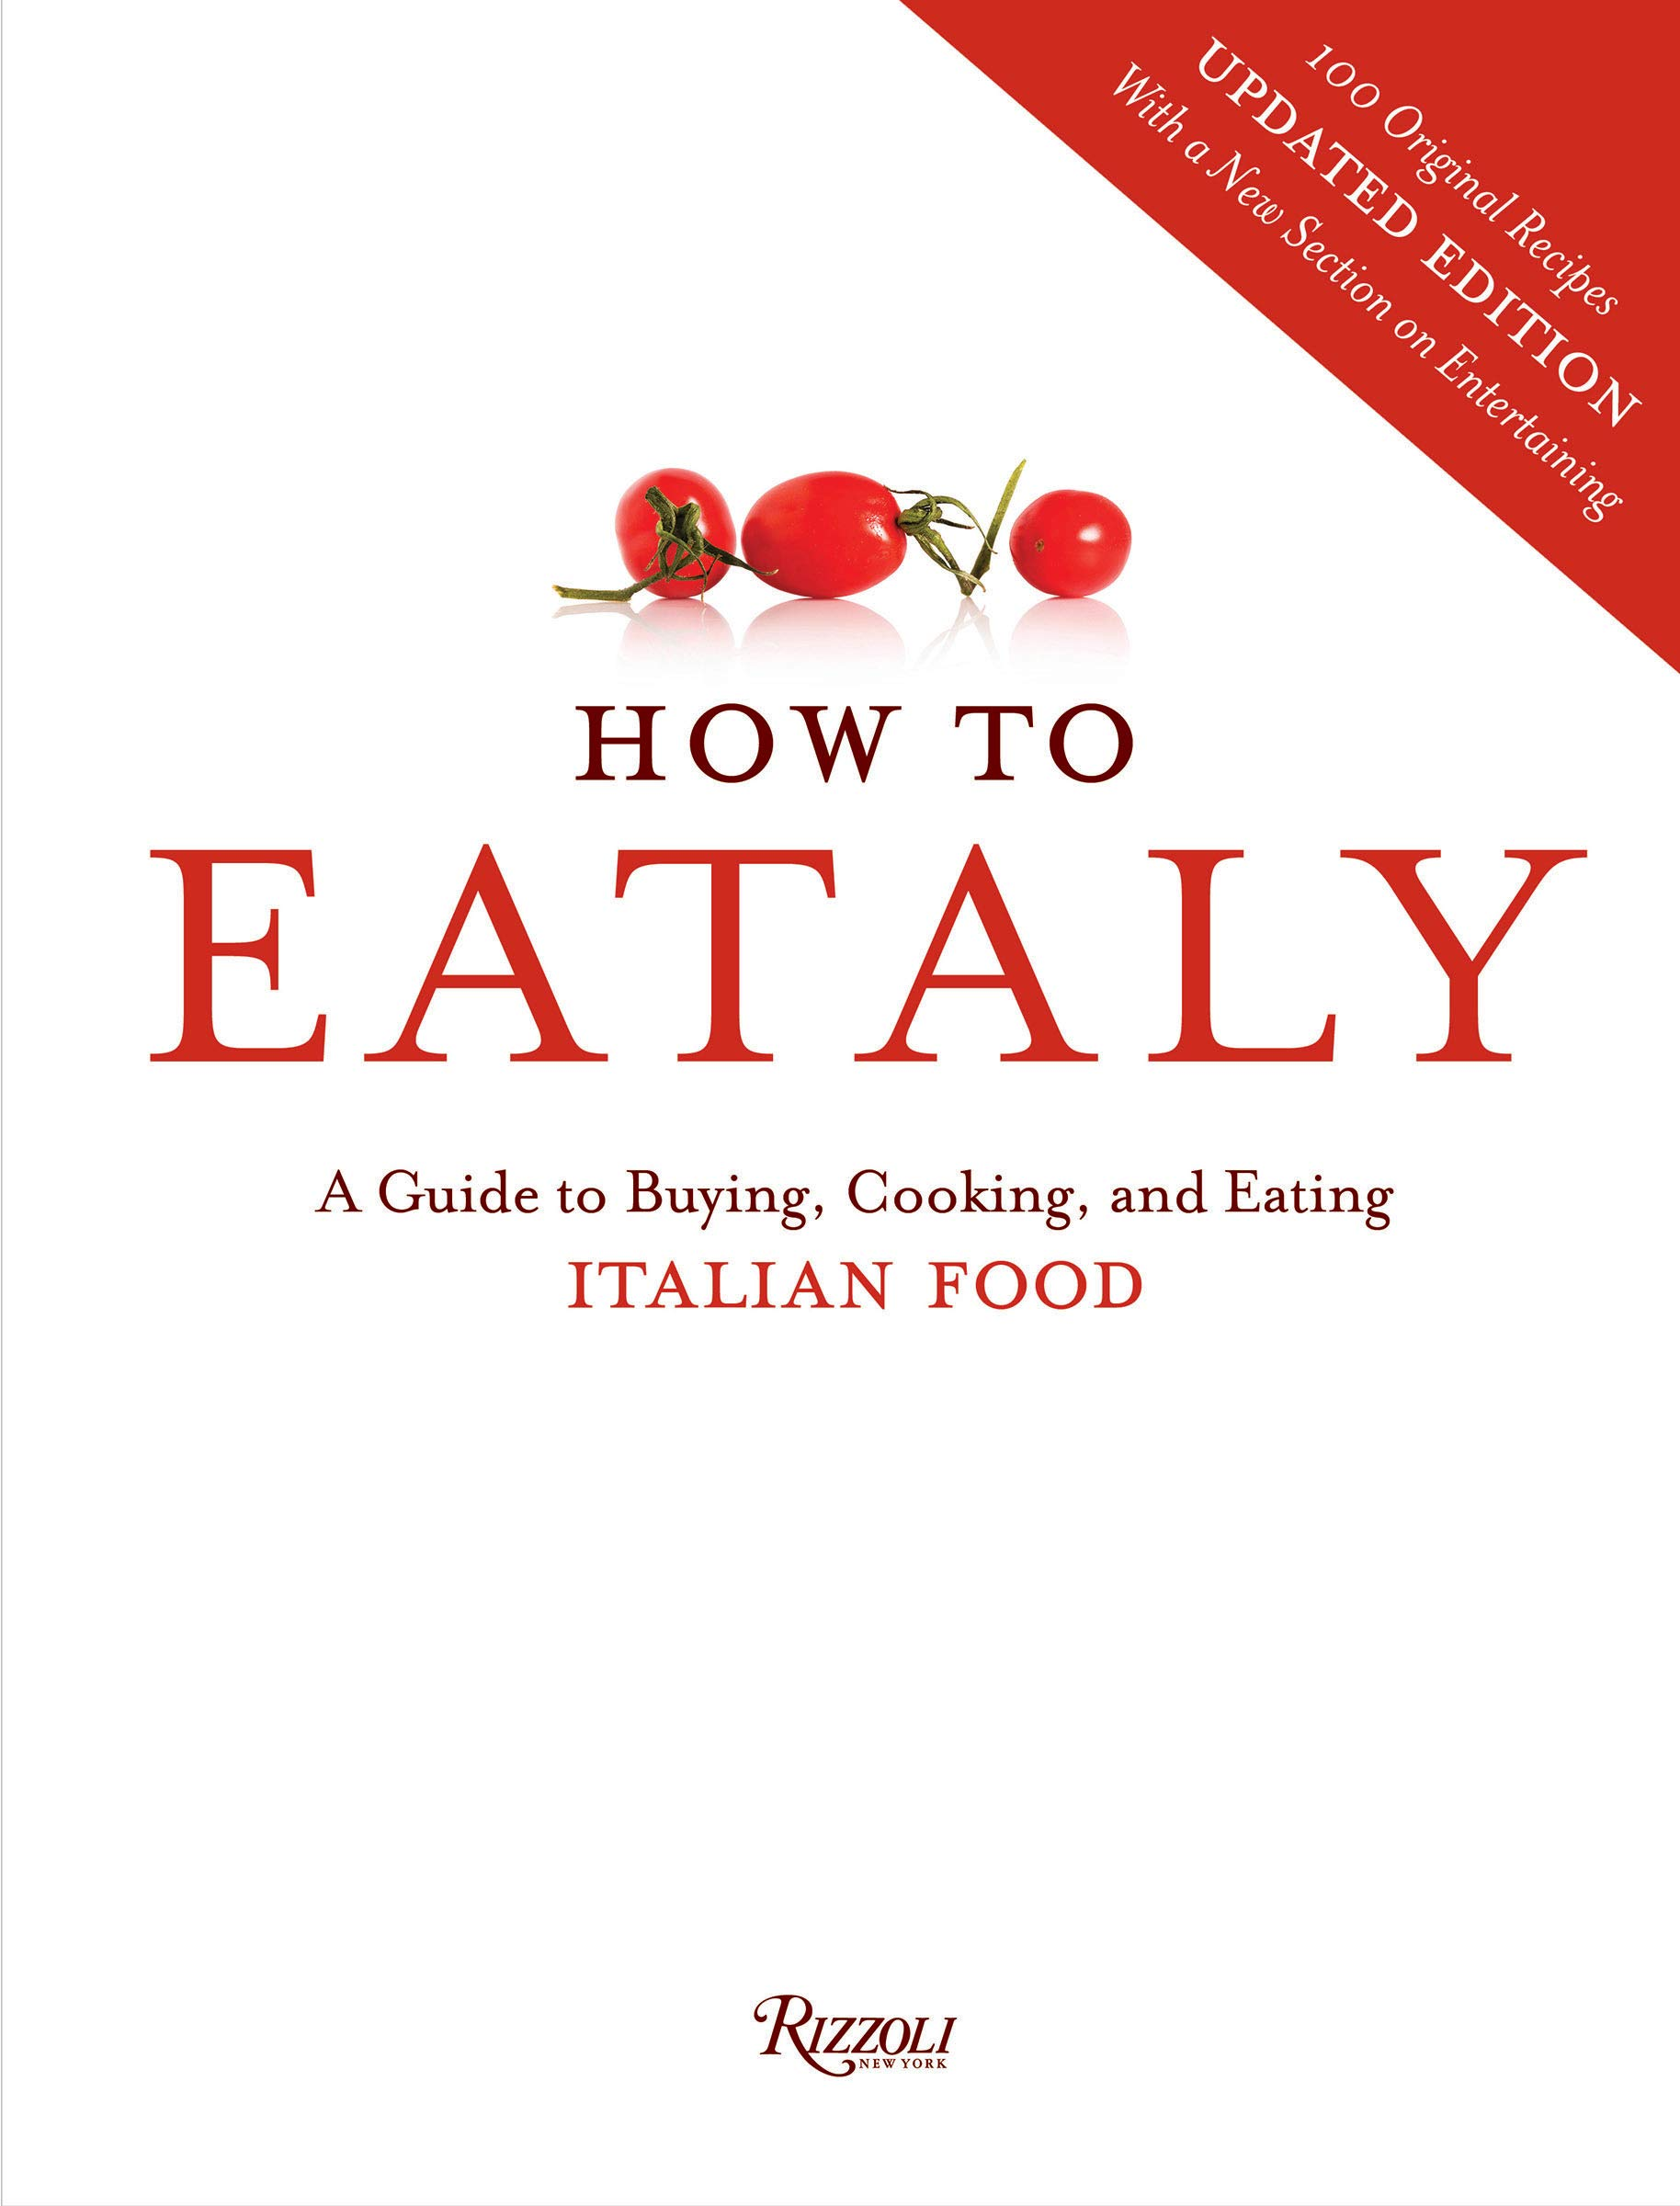 How To Eataly: A Guide to Buying, Cooking, and Eating